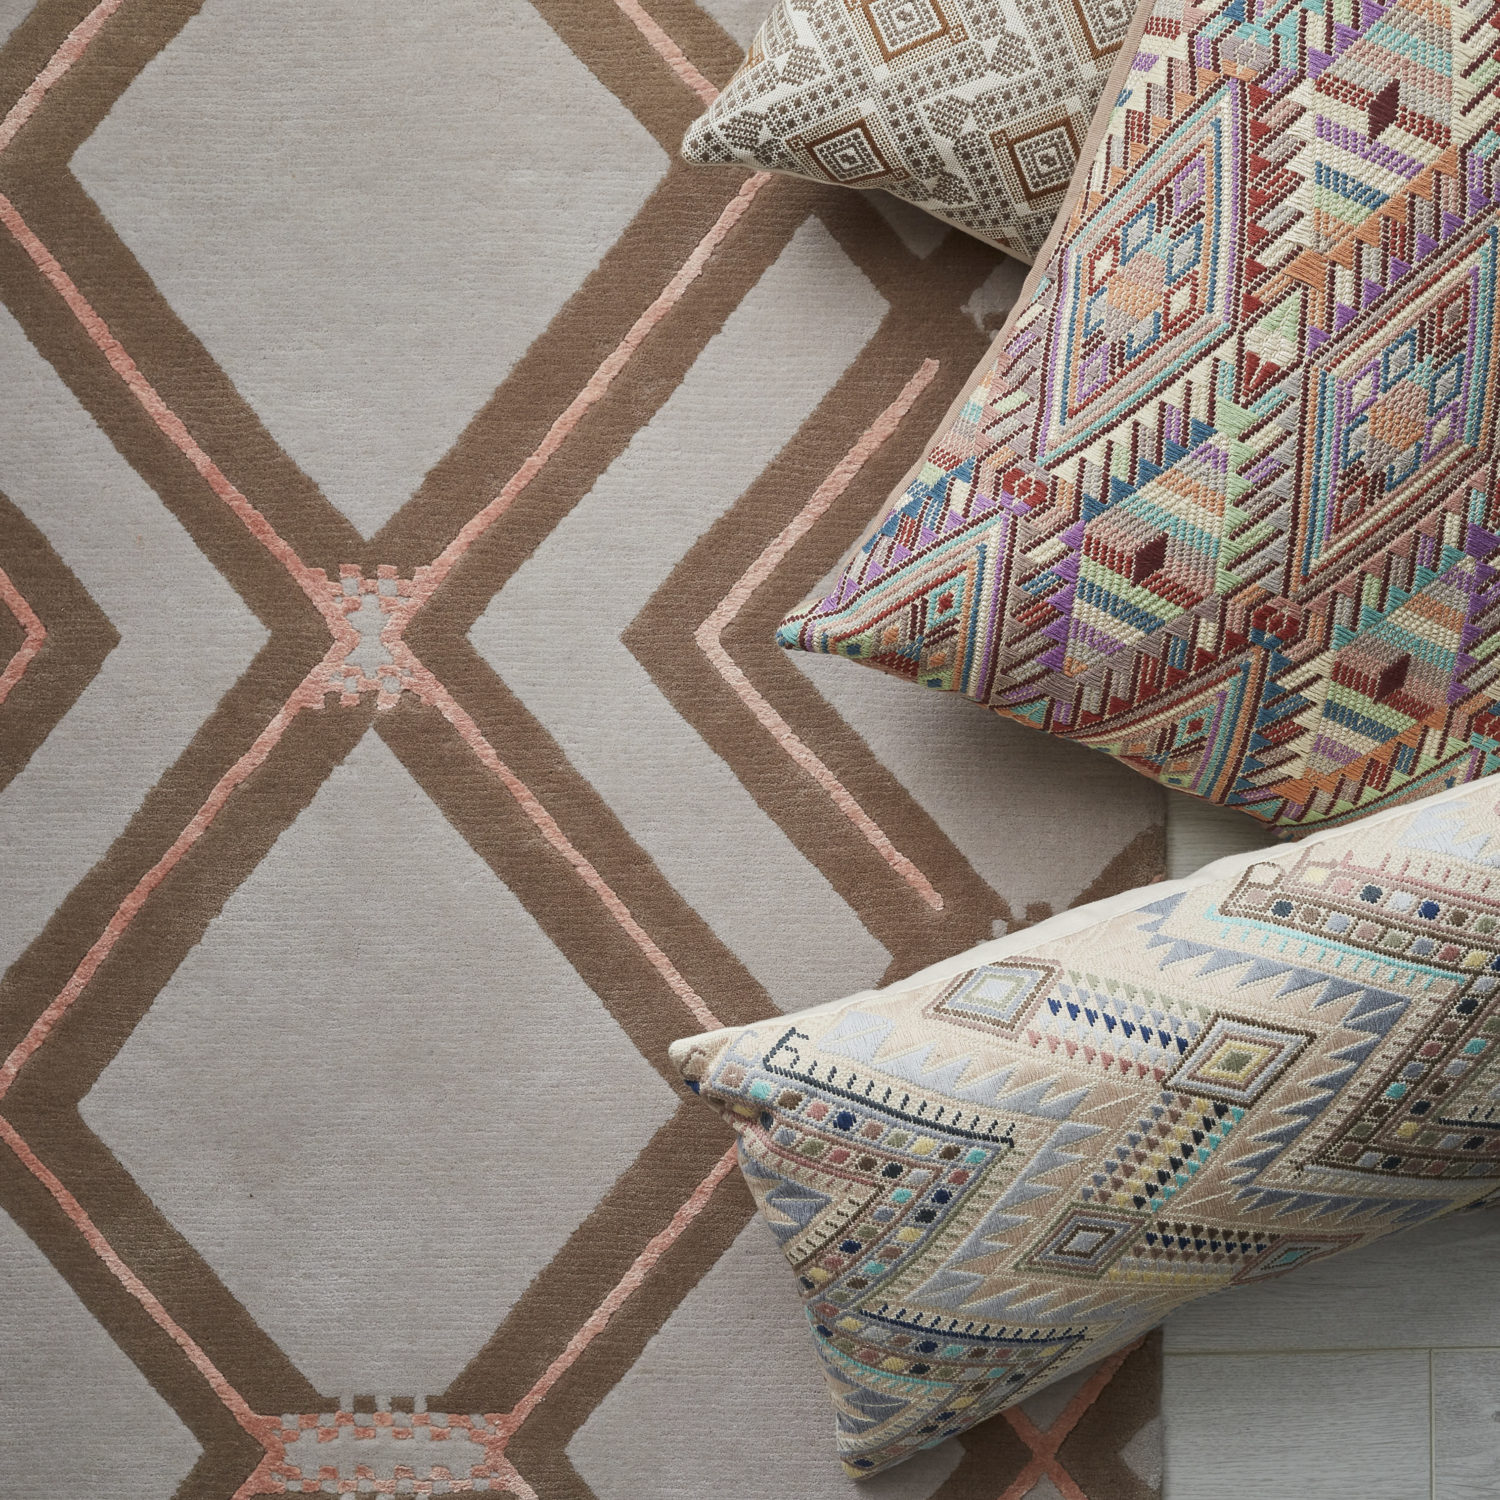 Sumal is inspired by the beautiful textile and rich patterns of Mayan culture